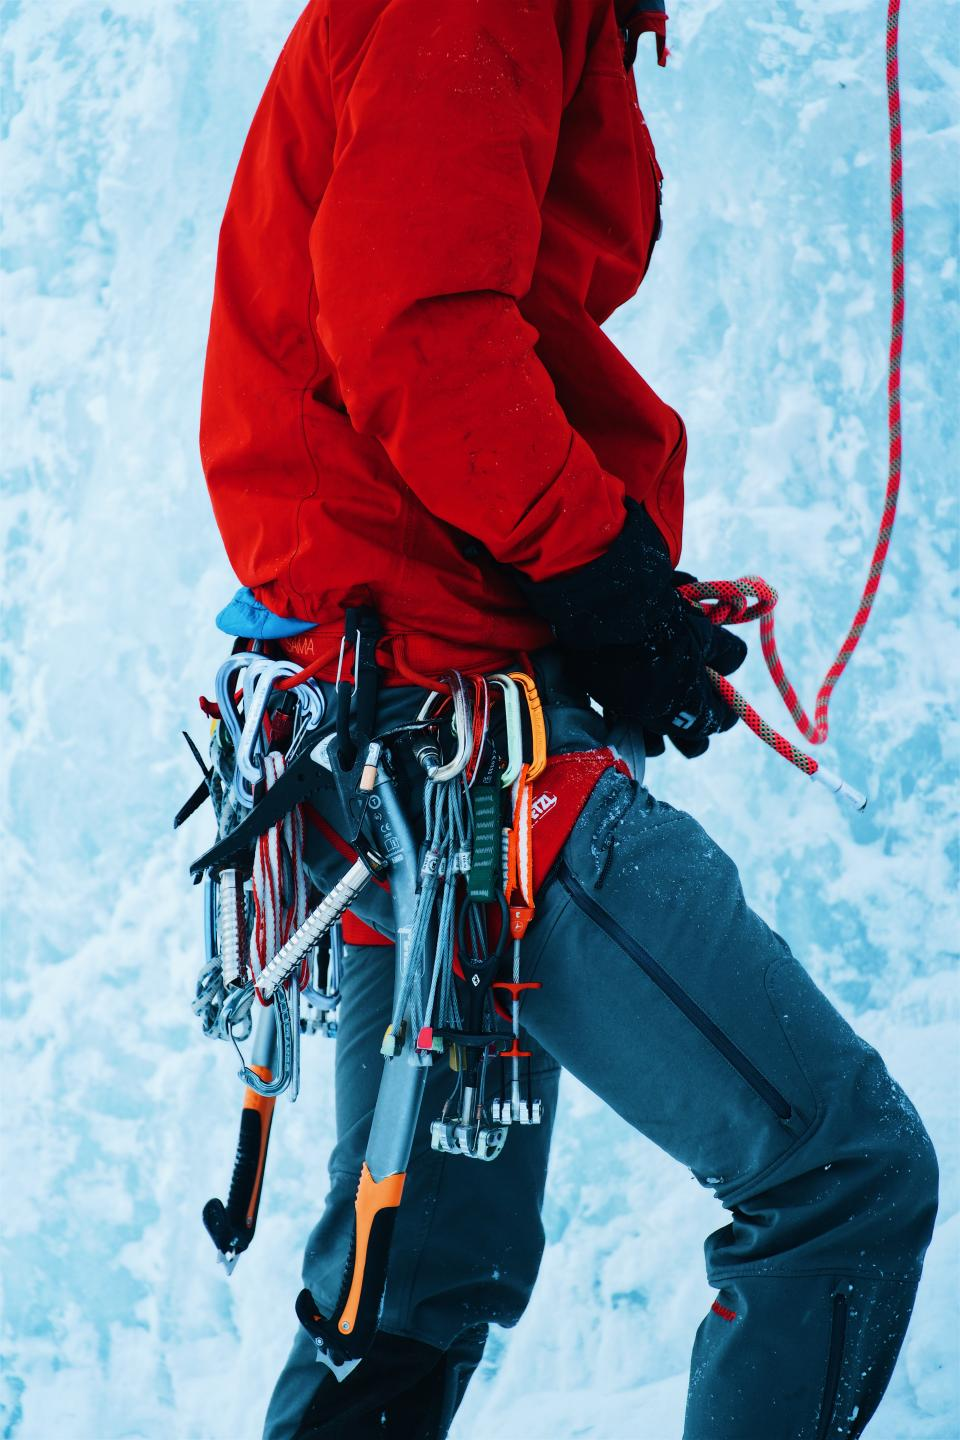 snow, winter, white, cold, weather, ice, nature, people, man, climb, mountaineer, gears